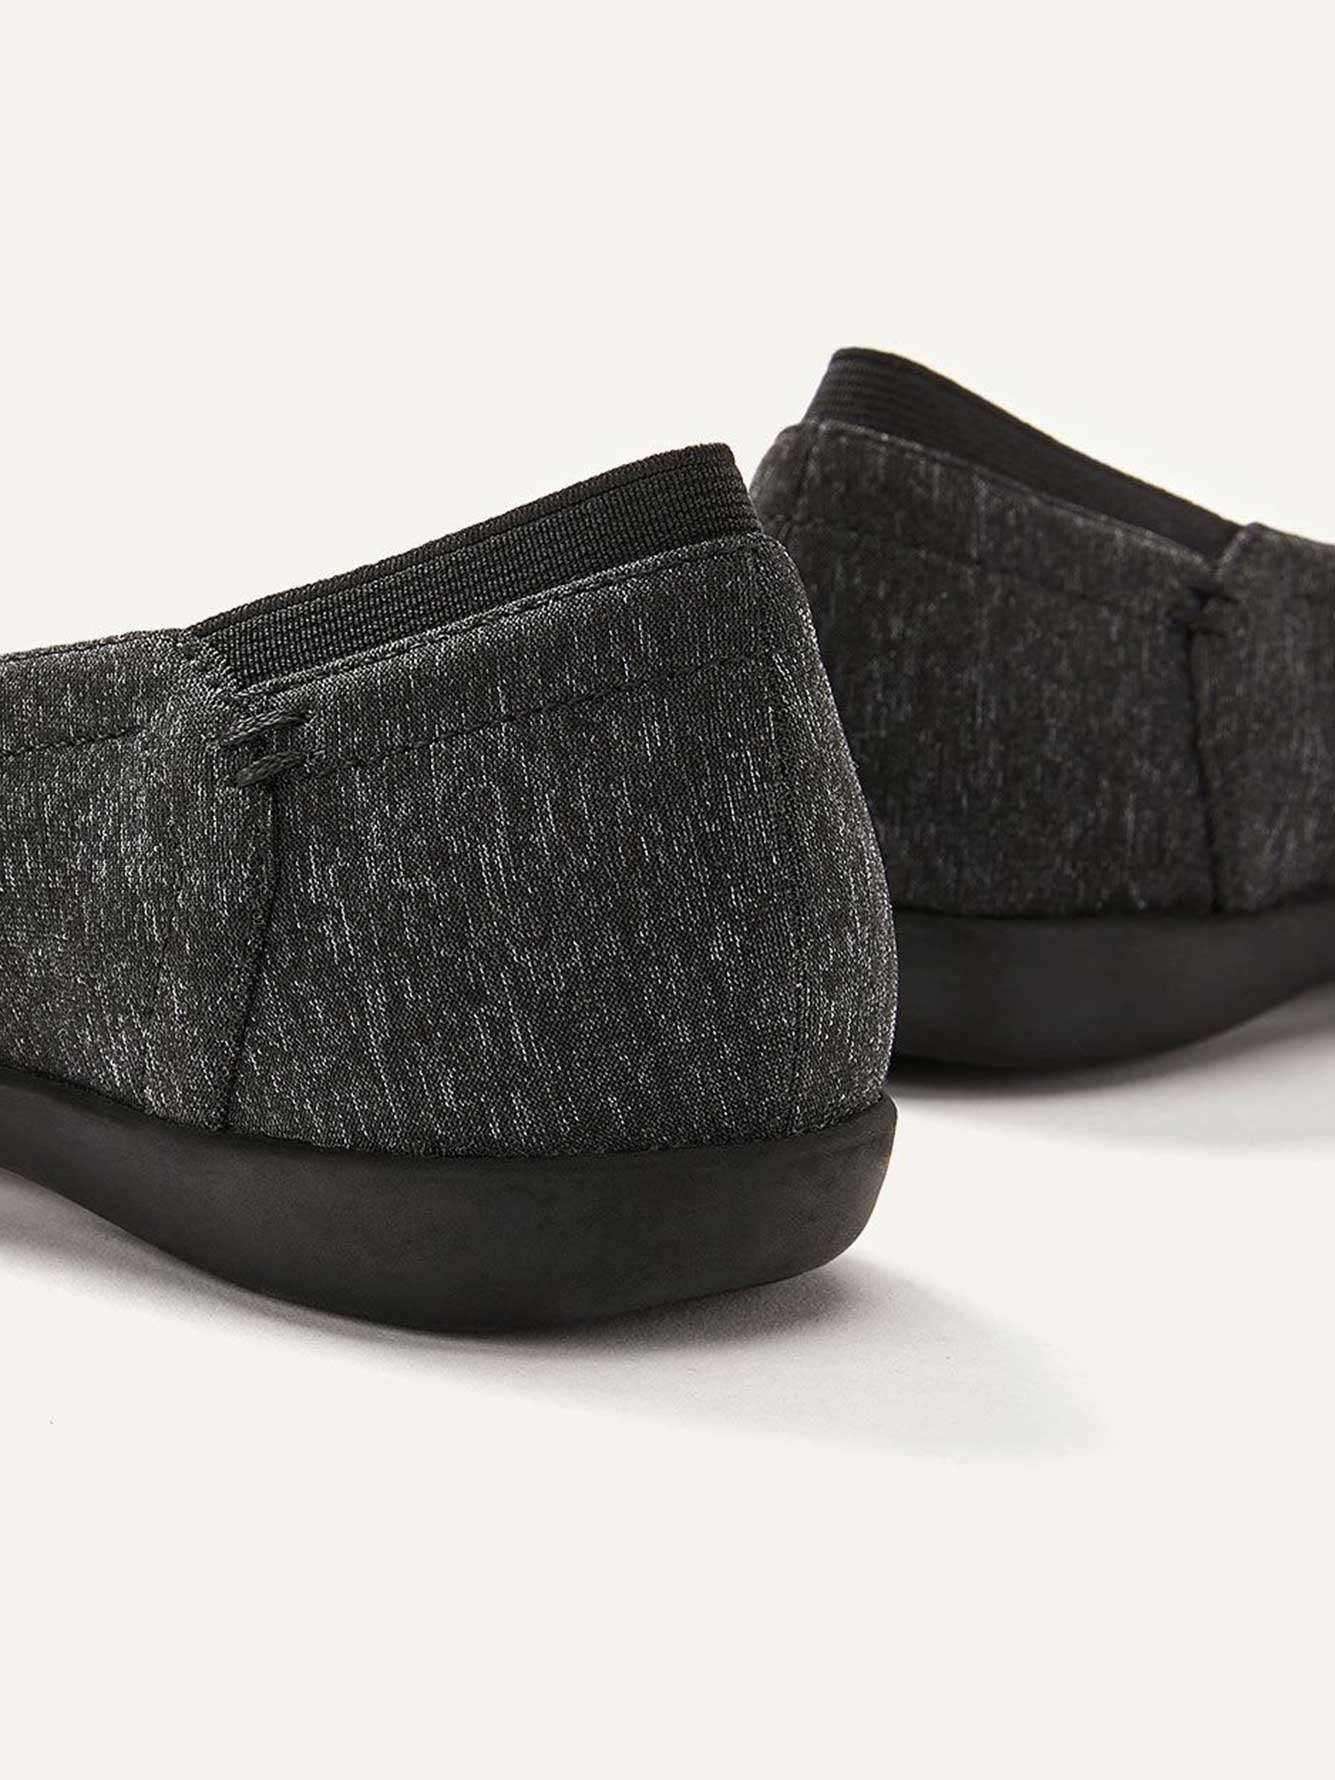 Chaussures à enfiler ballerine, pieds extra-larges